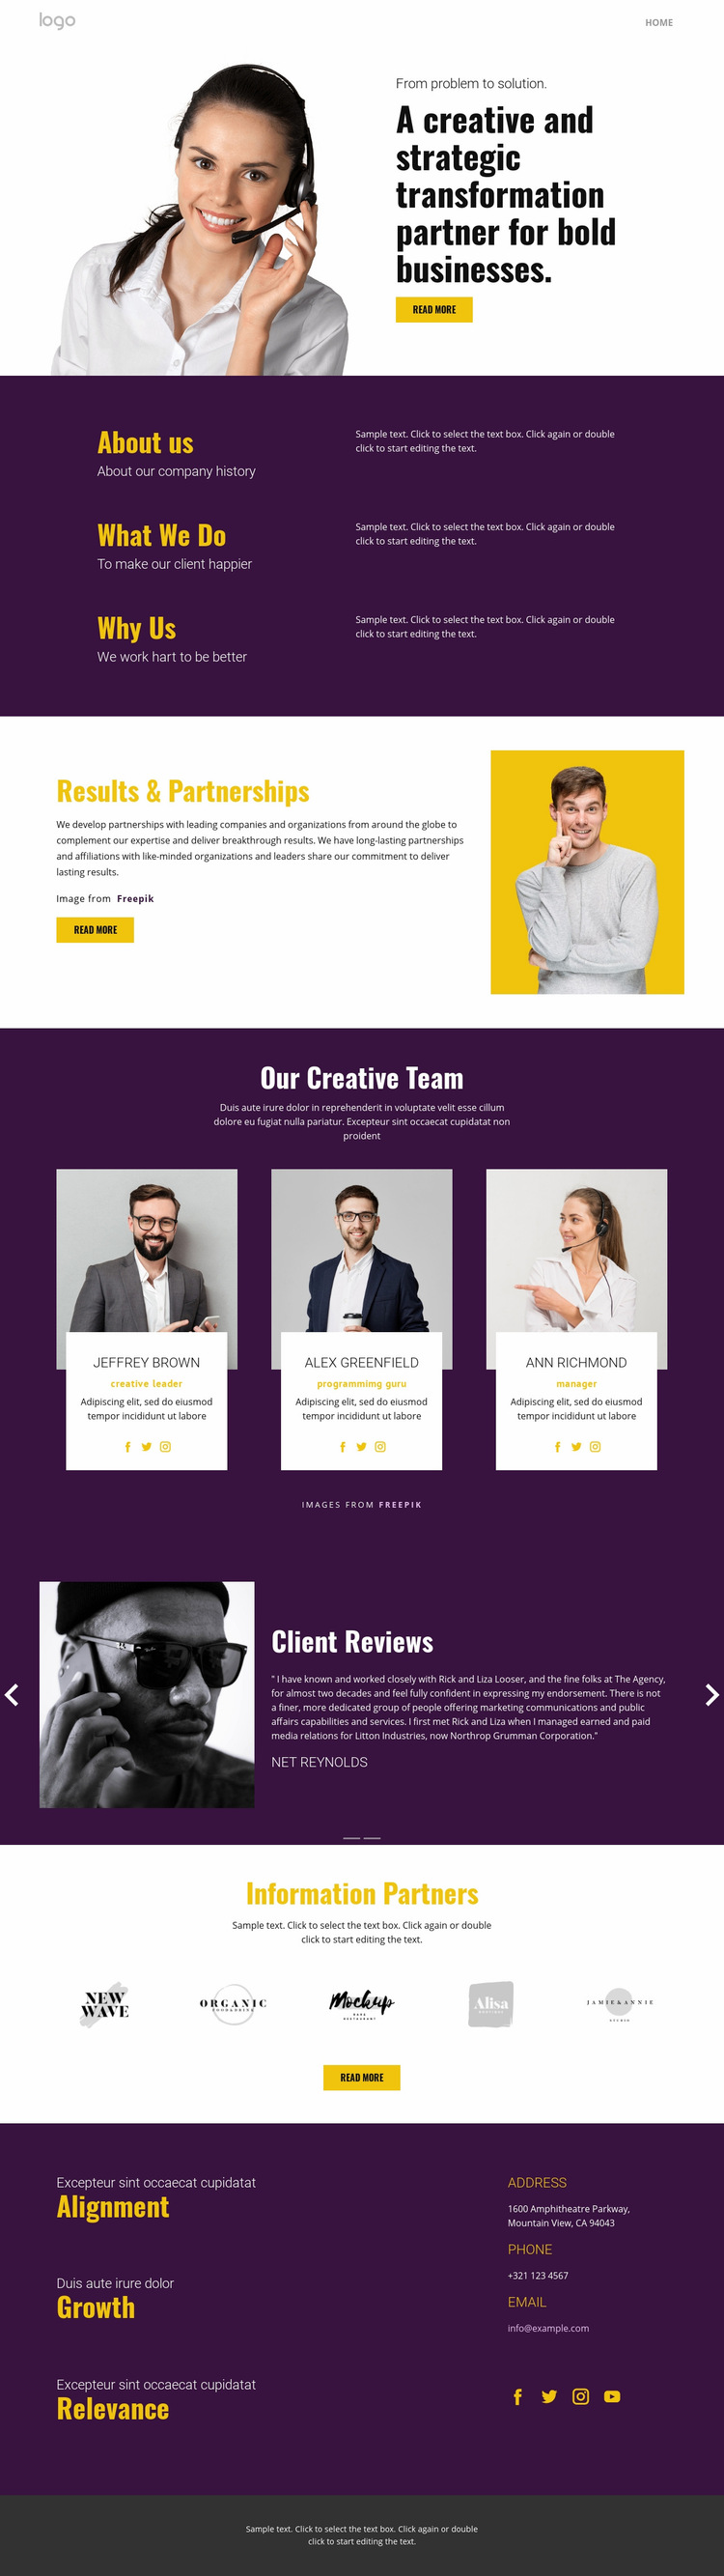 Creative strategy in business Web Page Design